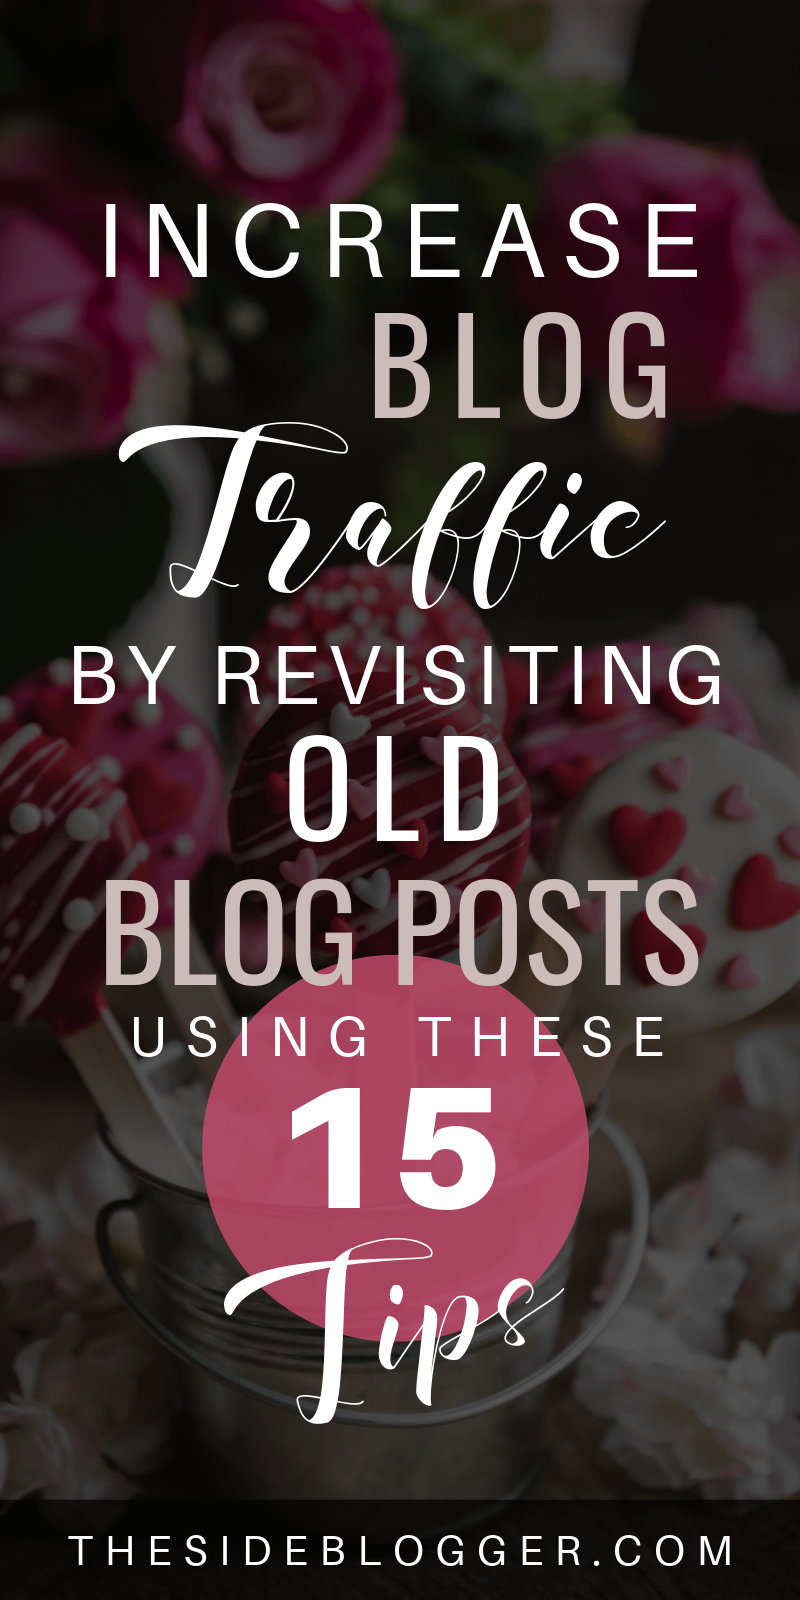 15 Tips for revisiting and reviving old blog posts that guarantee an increase in blog traffic.